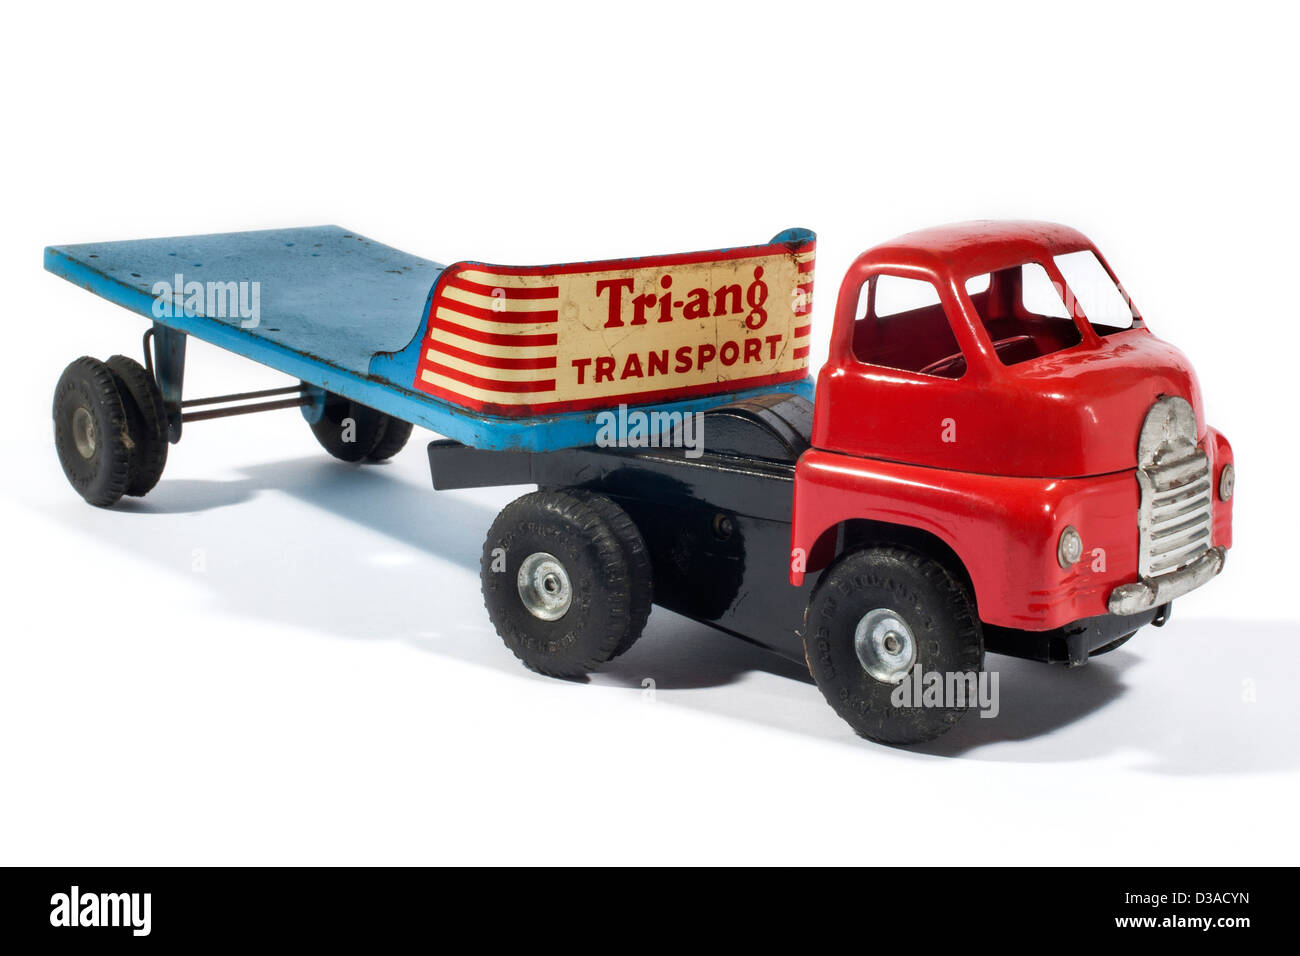 Tri-ang Transport flatbed lorry - Stock Image